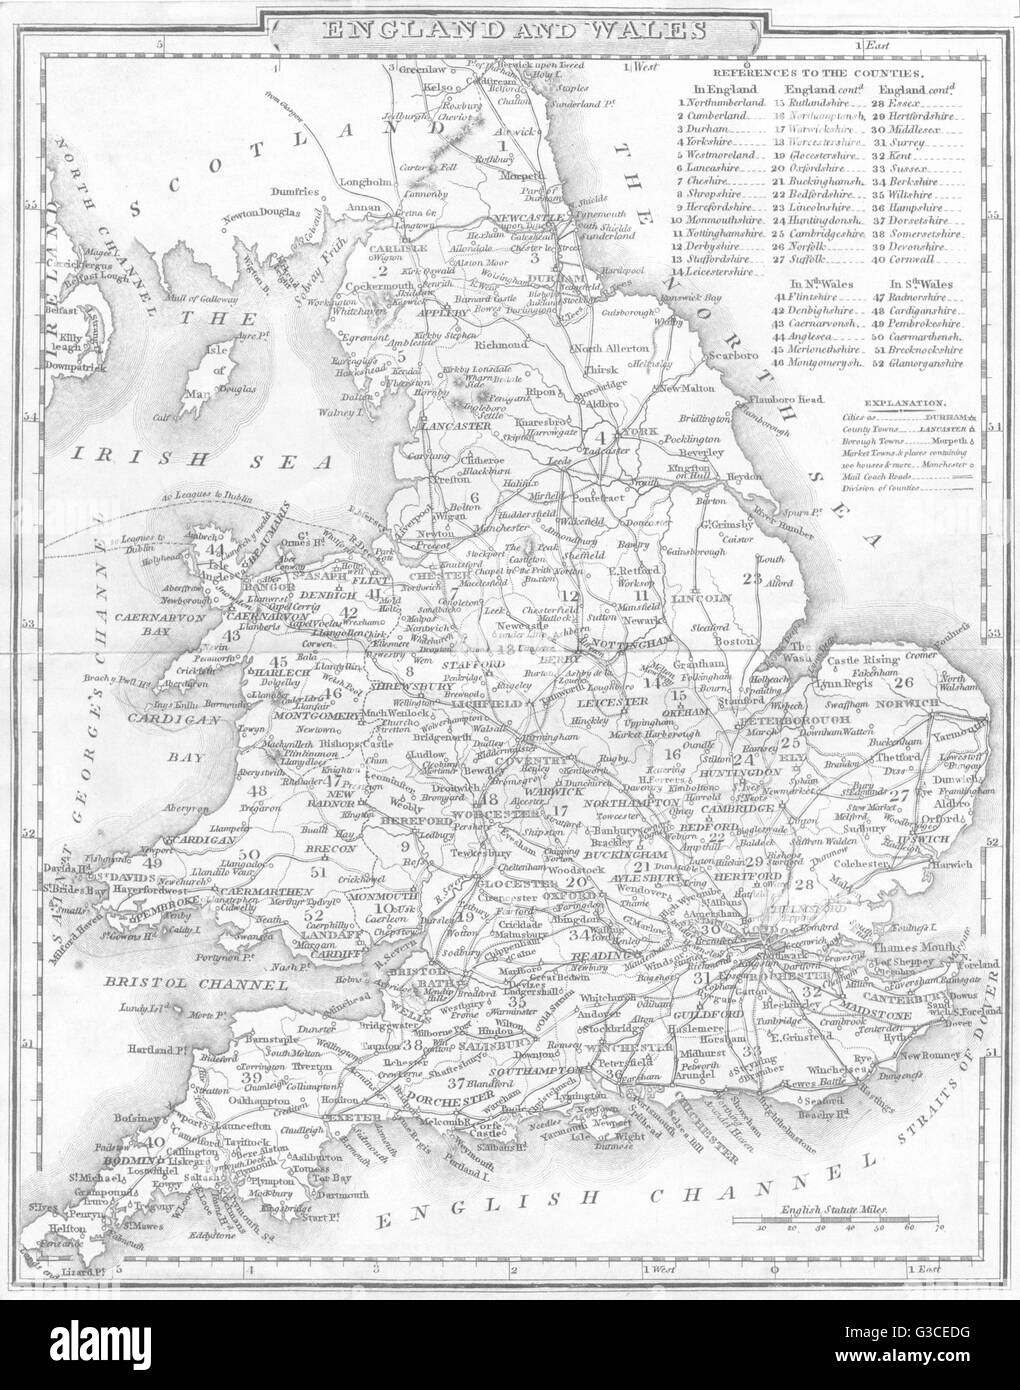 UK: England and Wales. DUGDALE, 1845 antique map - Stock Image